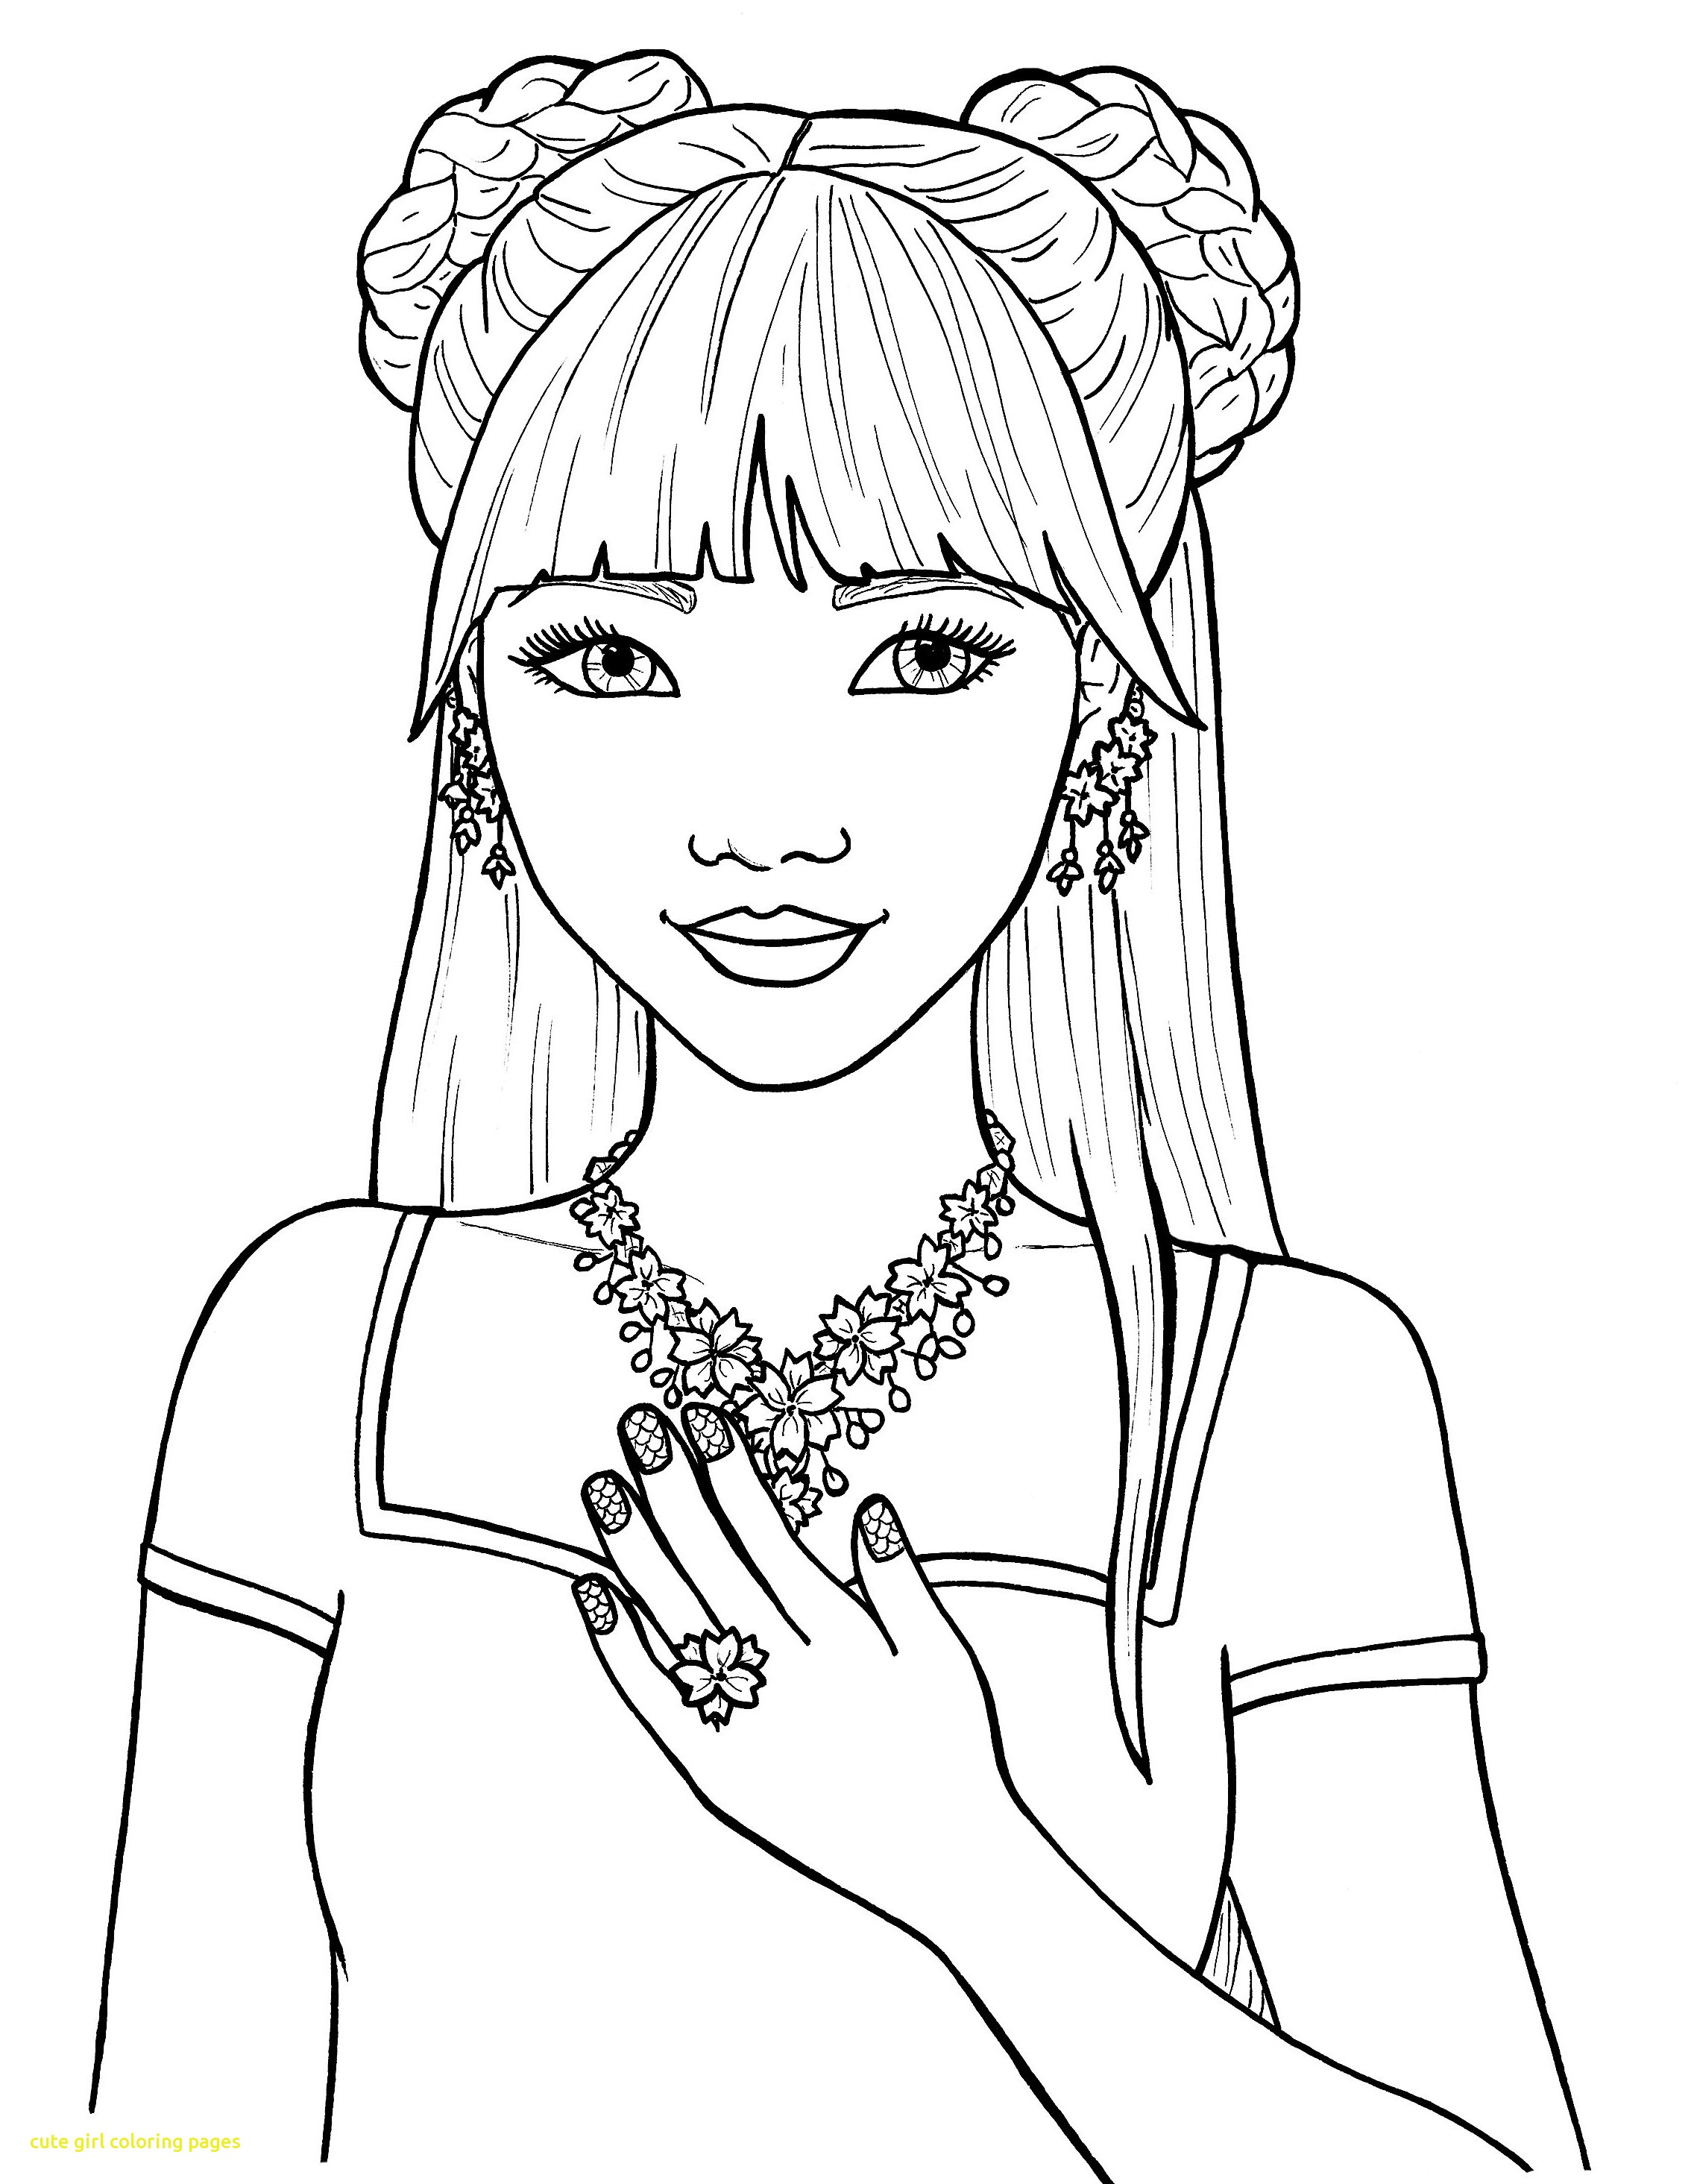 girl colouring pictures coloring pages for girls dr odd pictures colouring girl